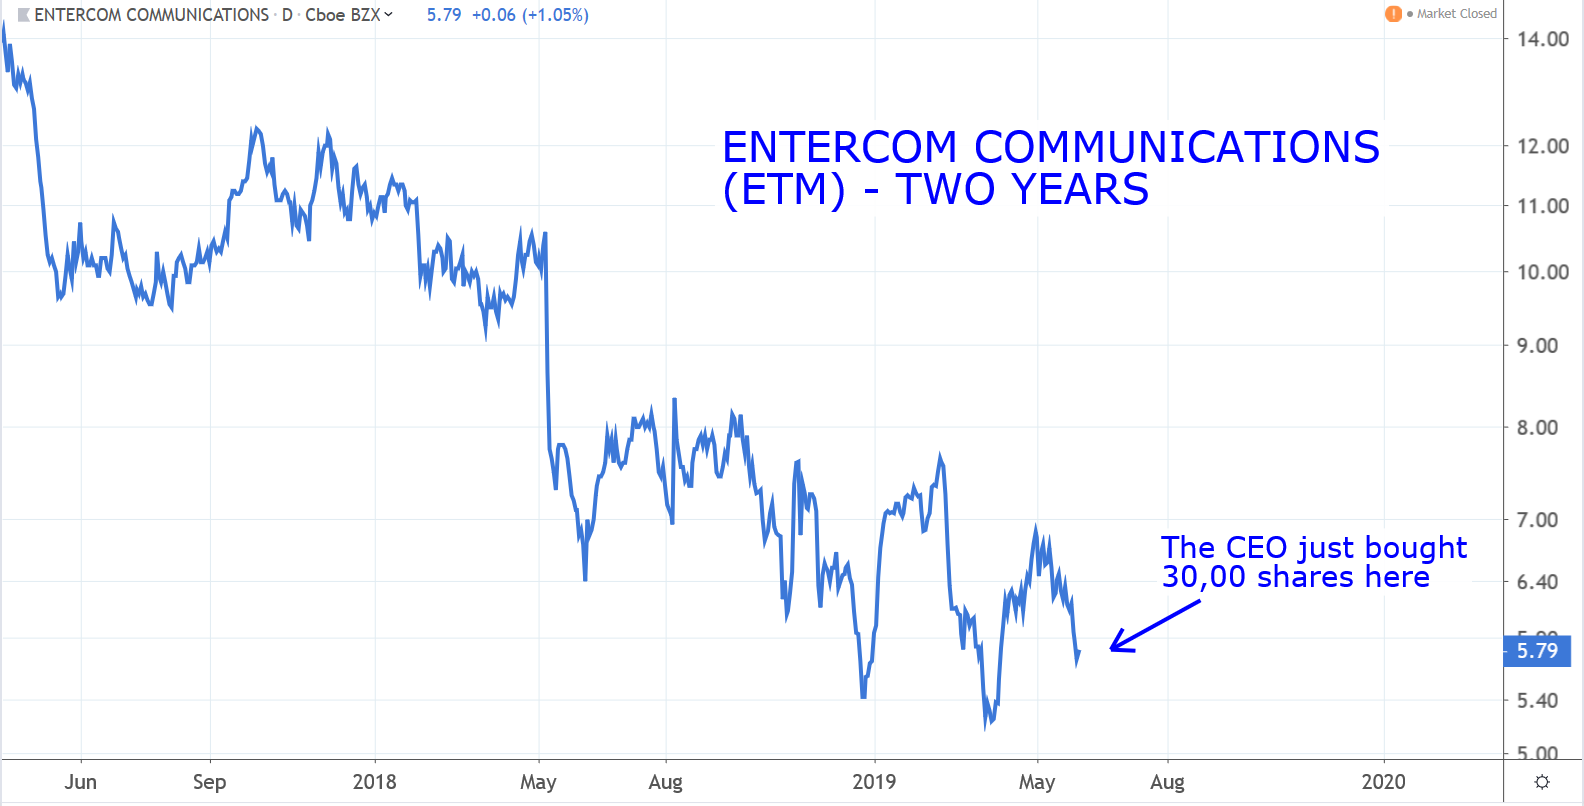 Stocks to Buy: Entercom Communications (ETM)